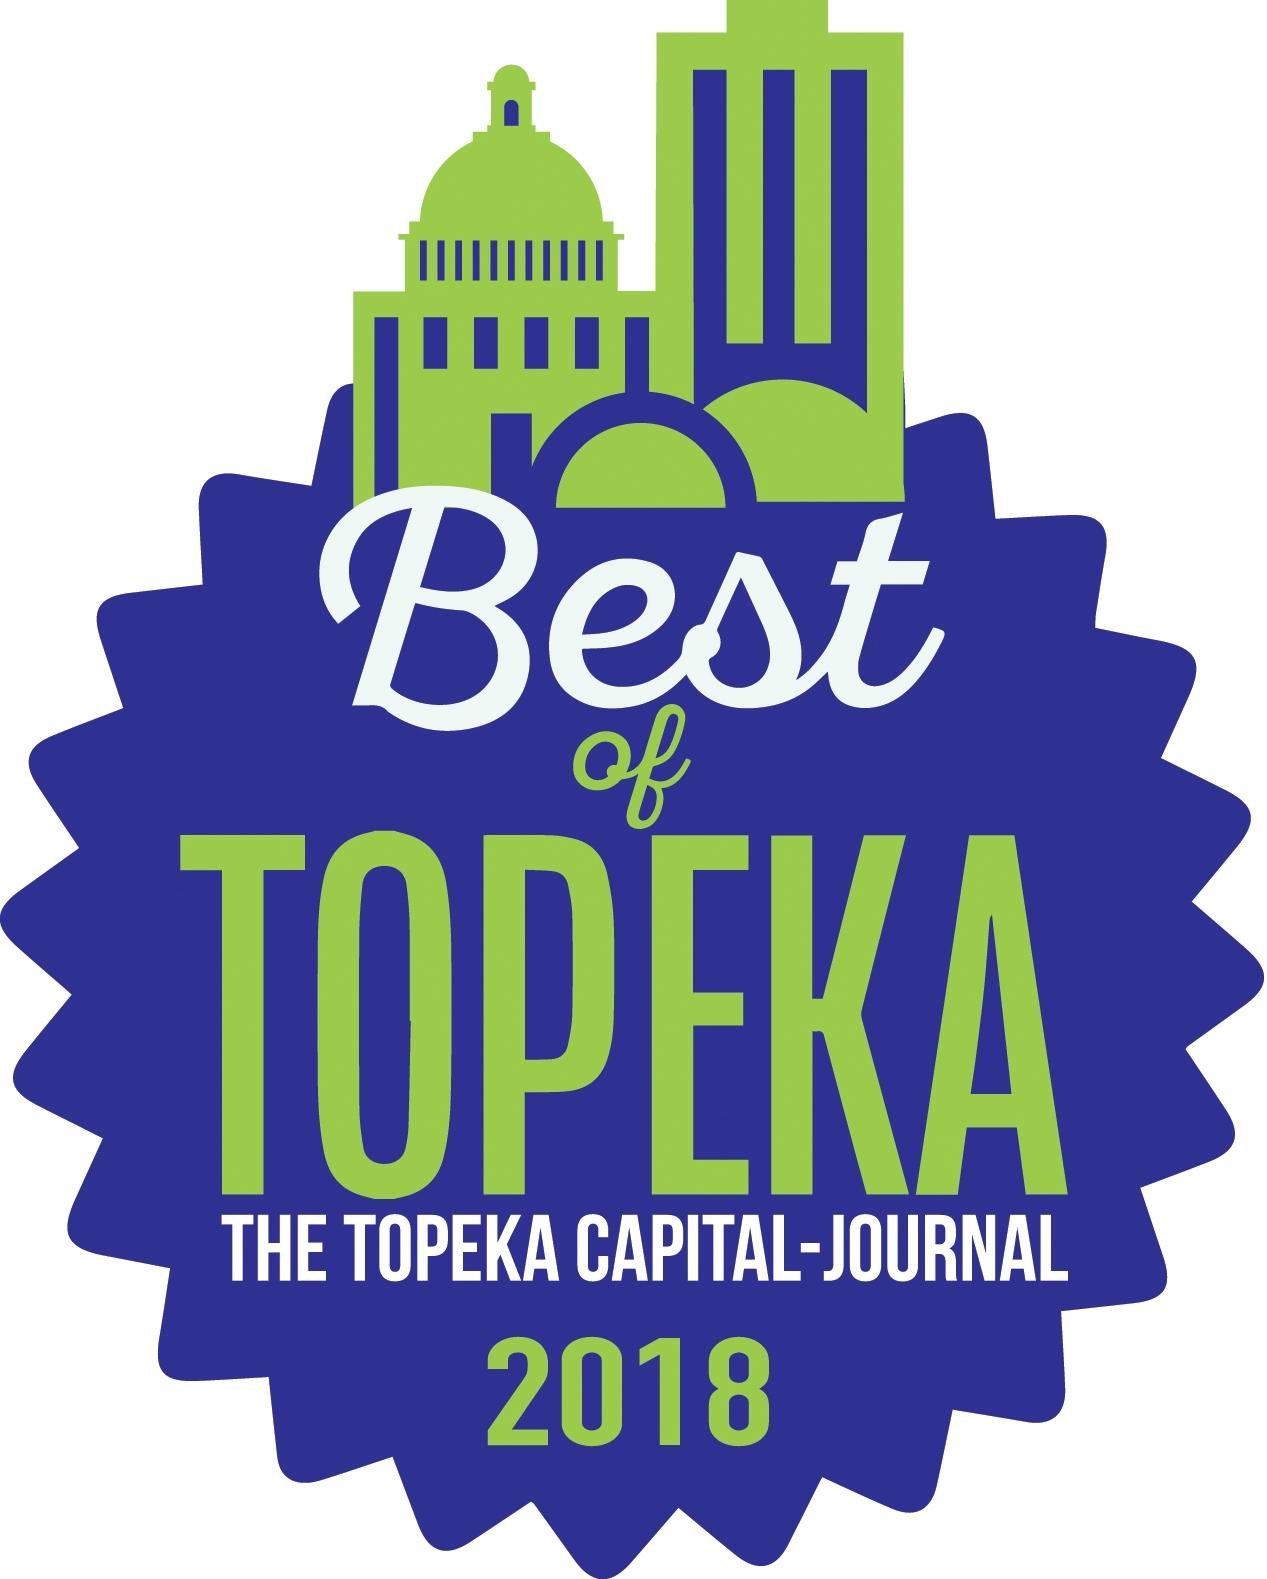 Best of Topeka is back in 2018 with a new twist and 38 new.